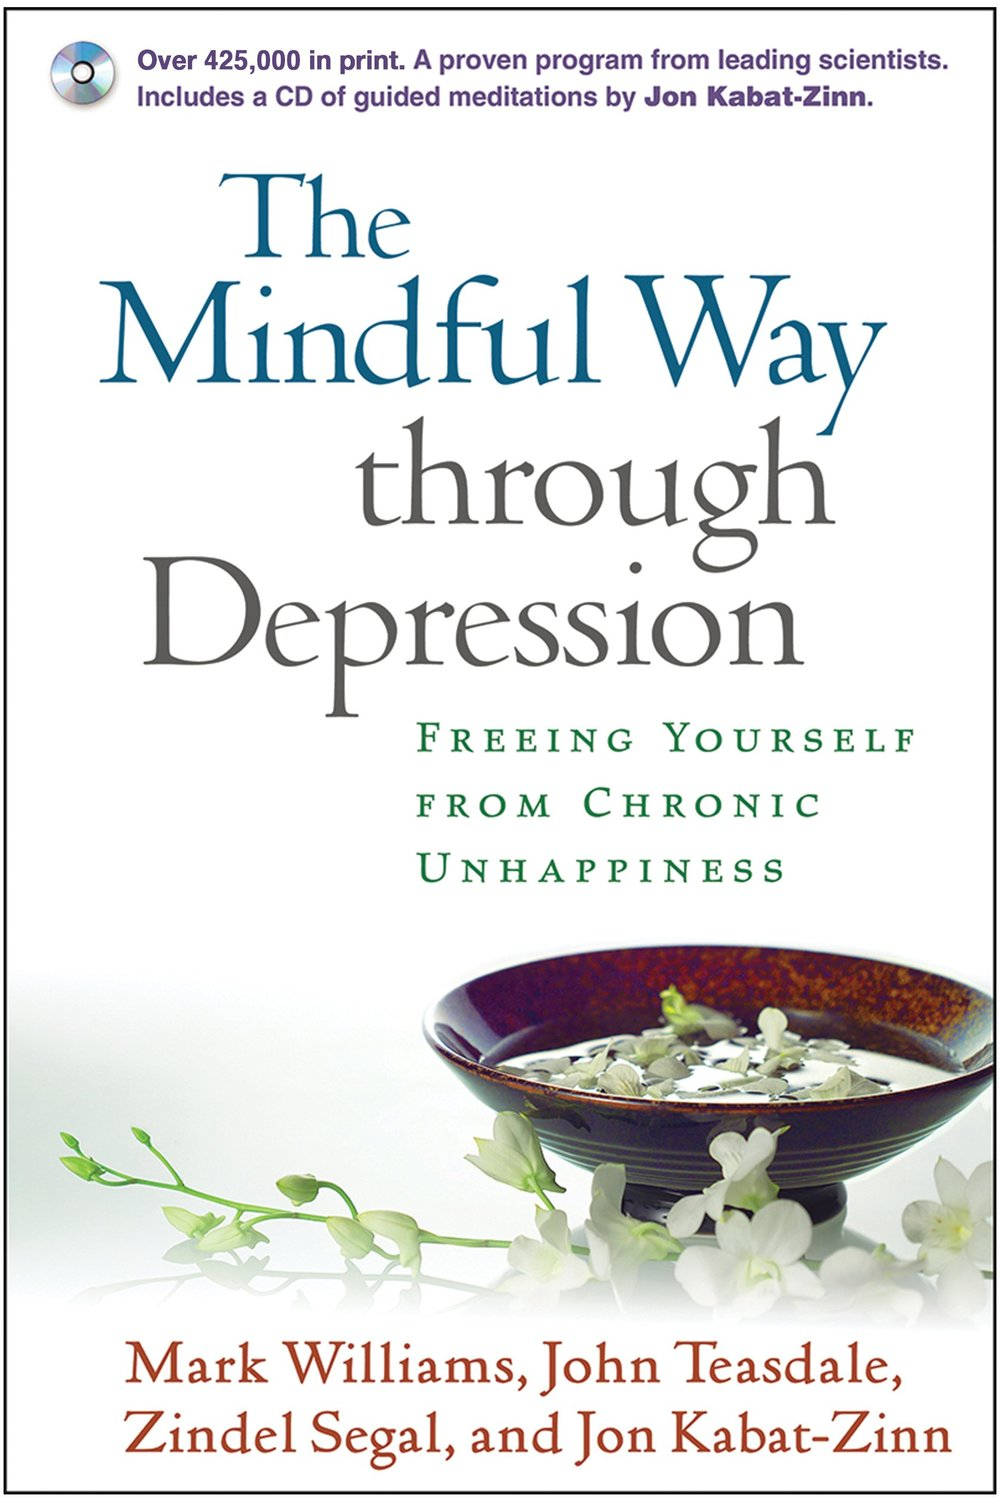 The mindful way through depression - This book was recommended to me by a PhD student, and I was encouraged to read this even if I do not suffer from depression. It apparently offers insight into dealing with issues that affect our mood, and it gives recommendations for building resilience and overcoming challenges in life.